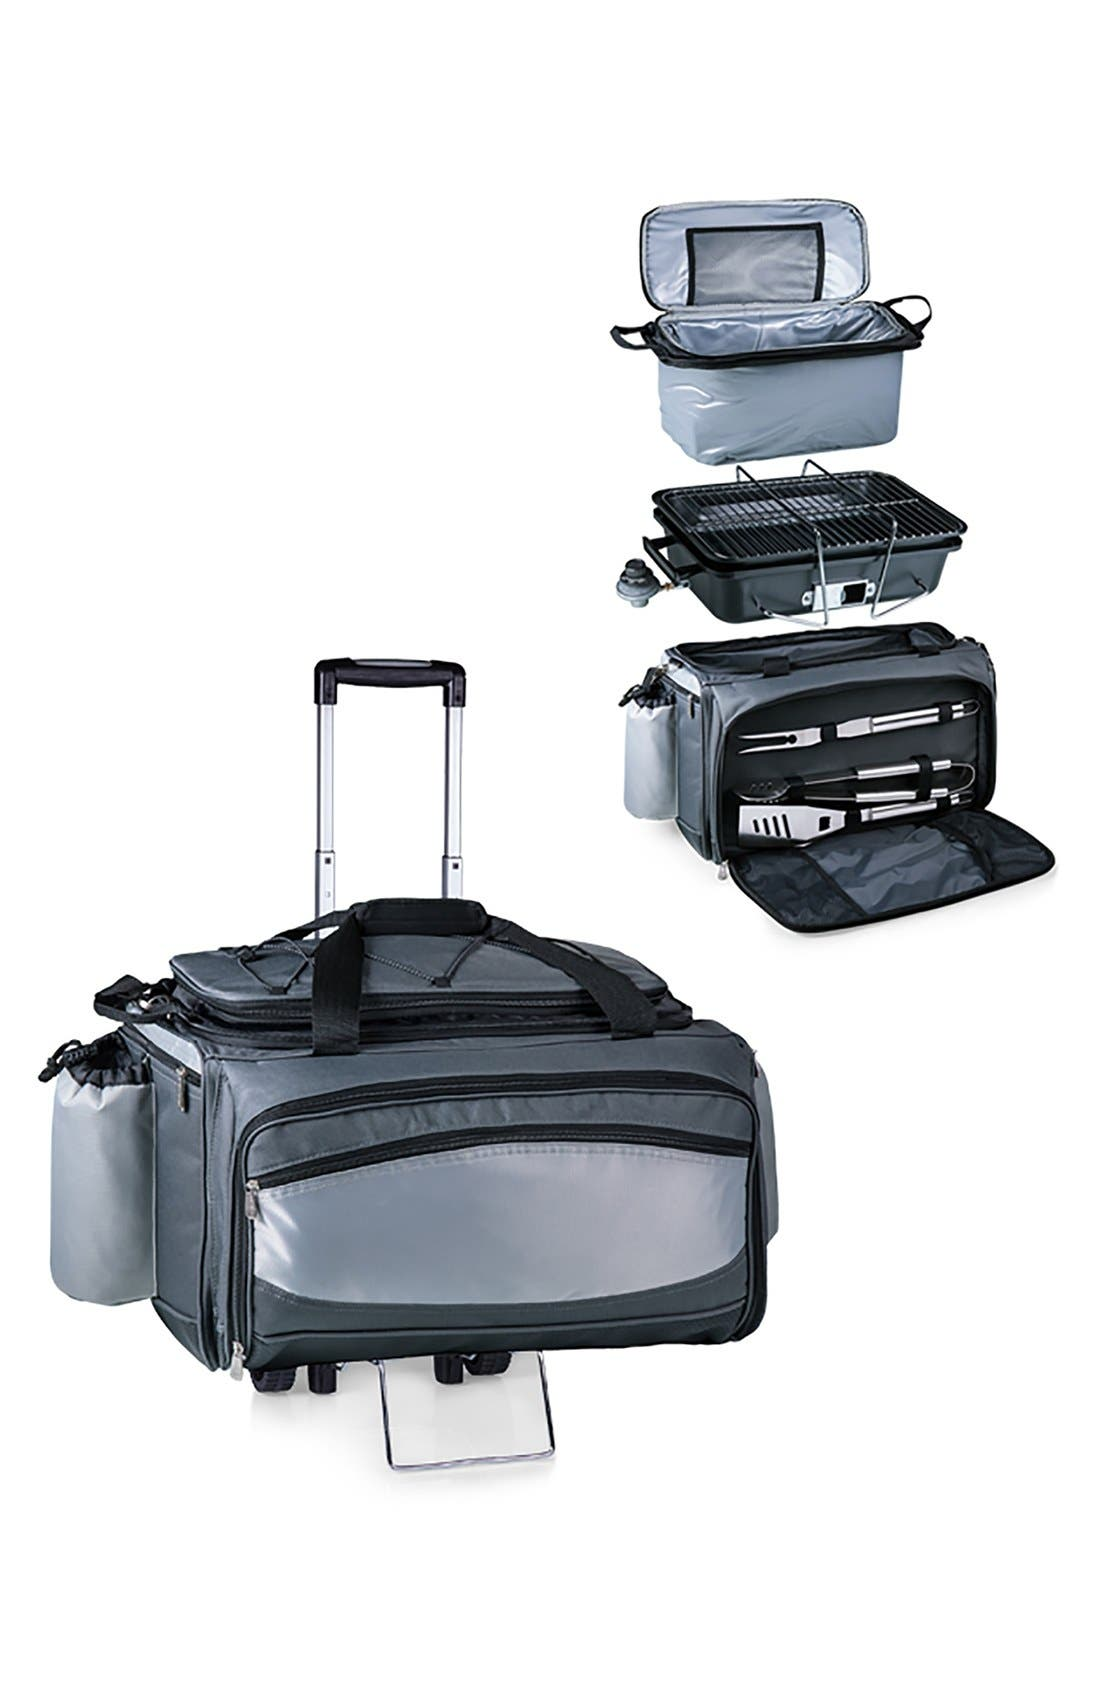 Main Image - Picnic Time 'Vulcan' BarbecueGrill & Cooler Trolley